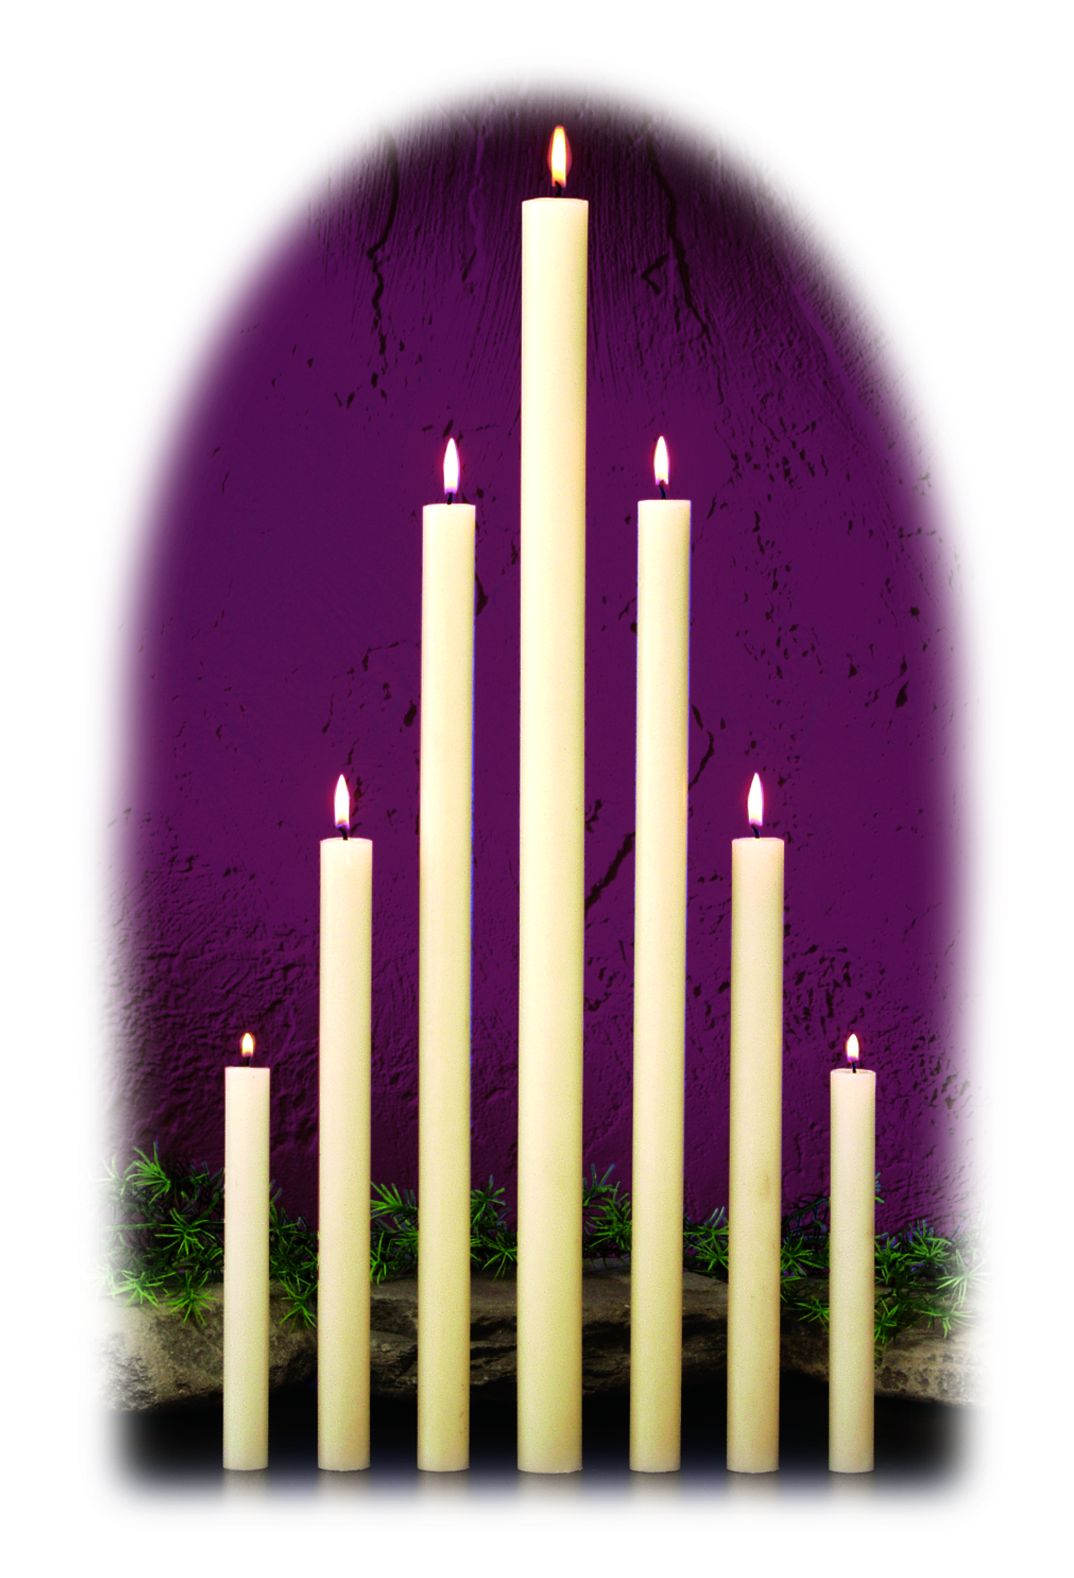 "10-1/2"" long, 1-1/8"" diameter candles"